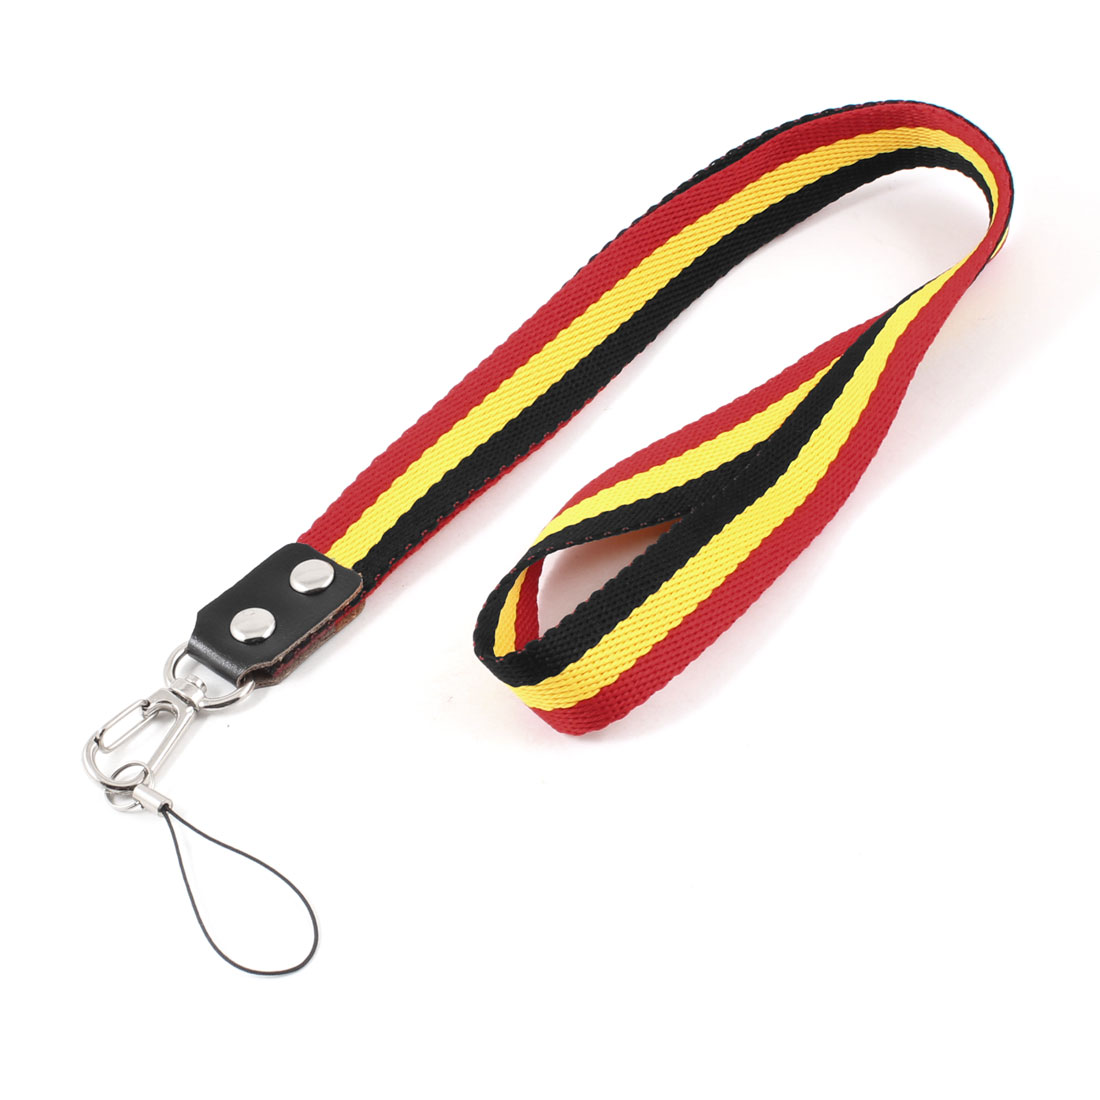 Unique Bargains Striped Print Mobile Phone Work Card Neck Strap Black Yellow Red